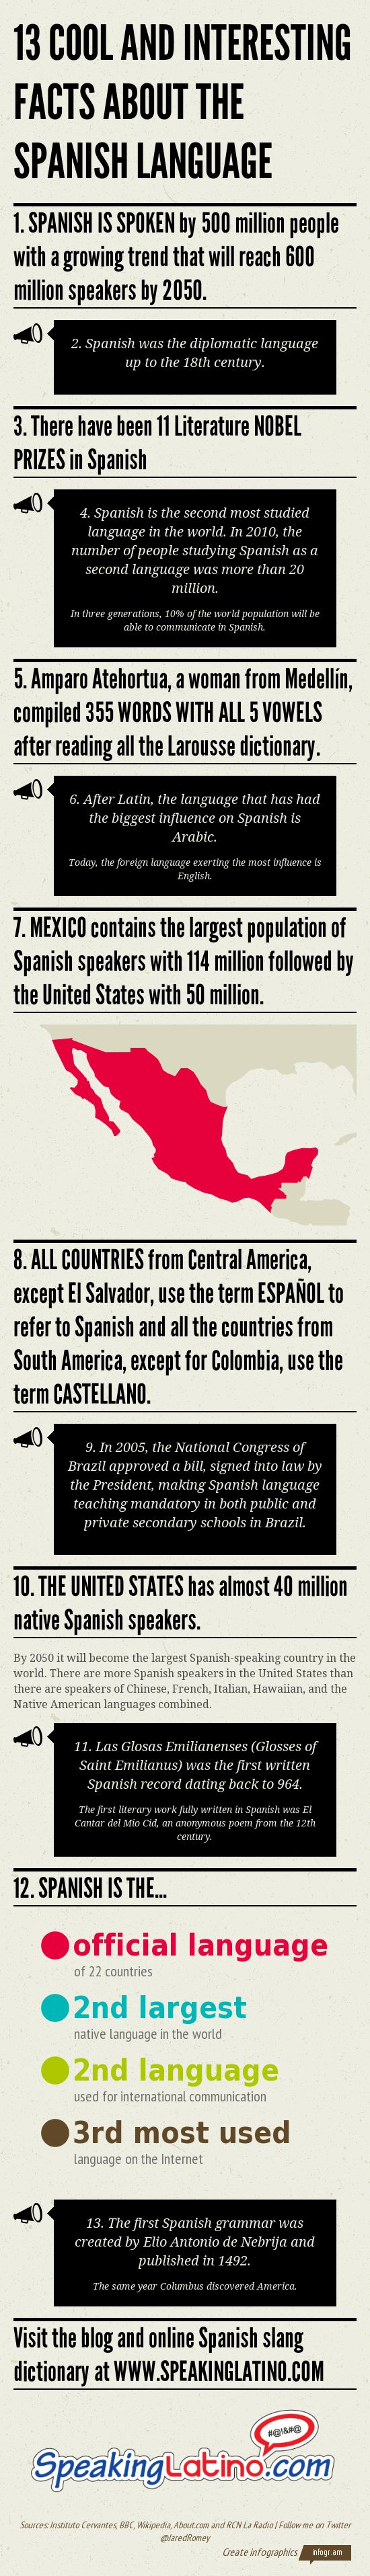 Facts About Spanish Language Infographic